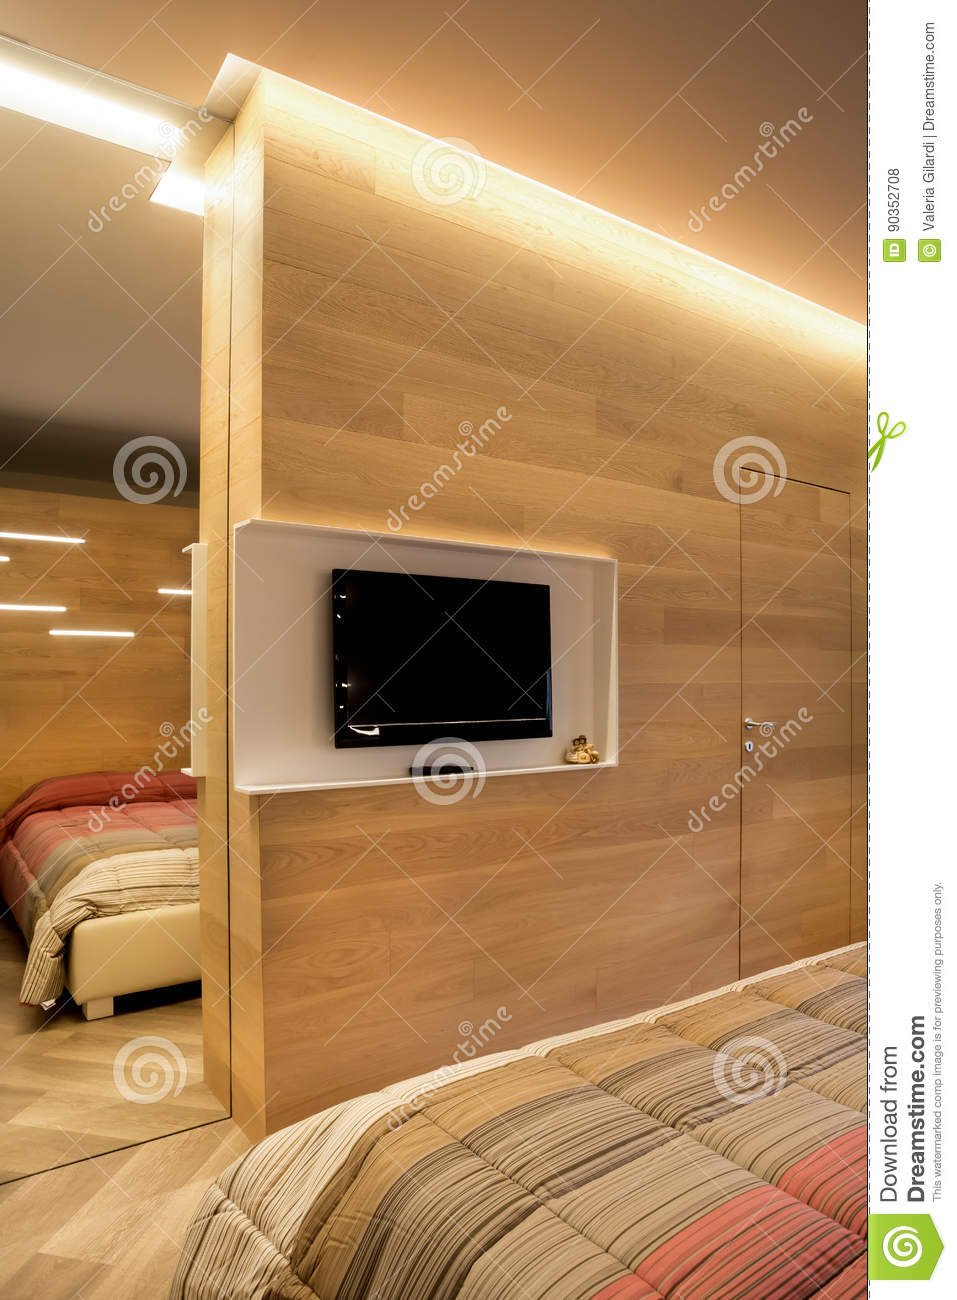 Picture of: Tv Wall With Mirror And Door Stock Photo Image Of Parquet Reflection 90352708